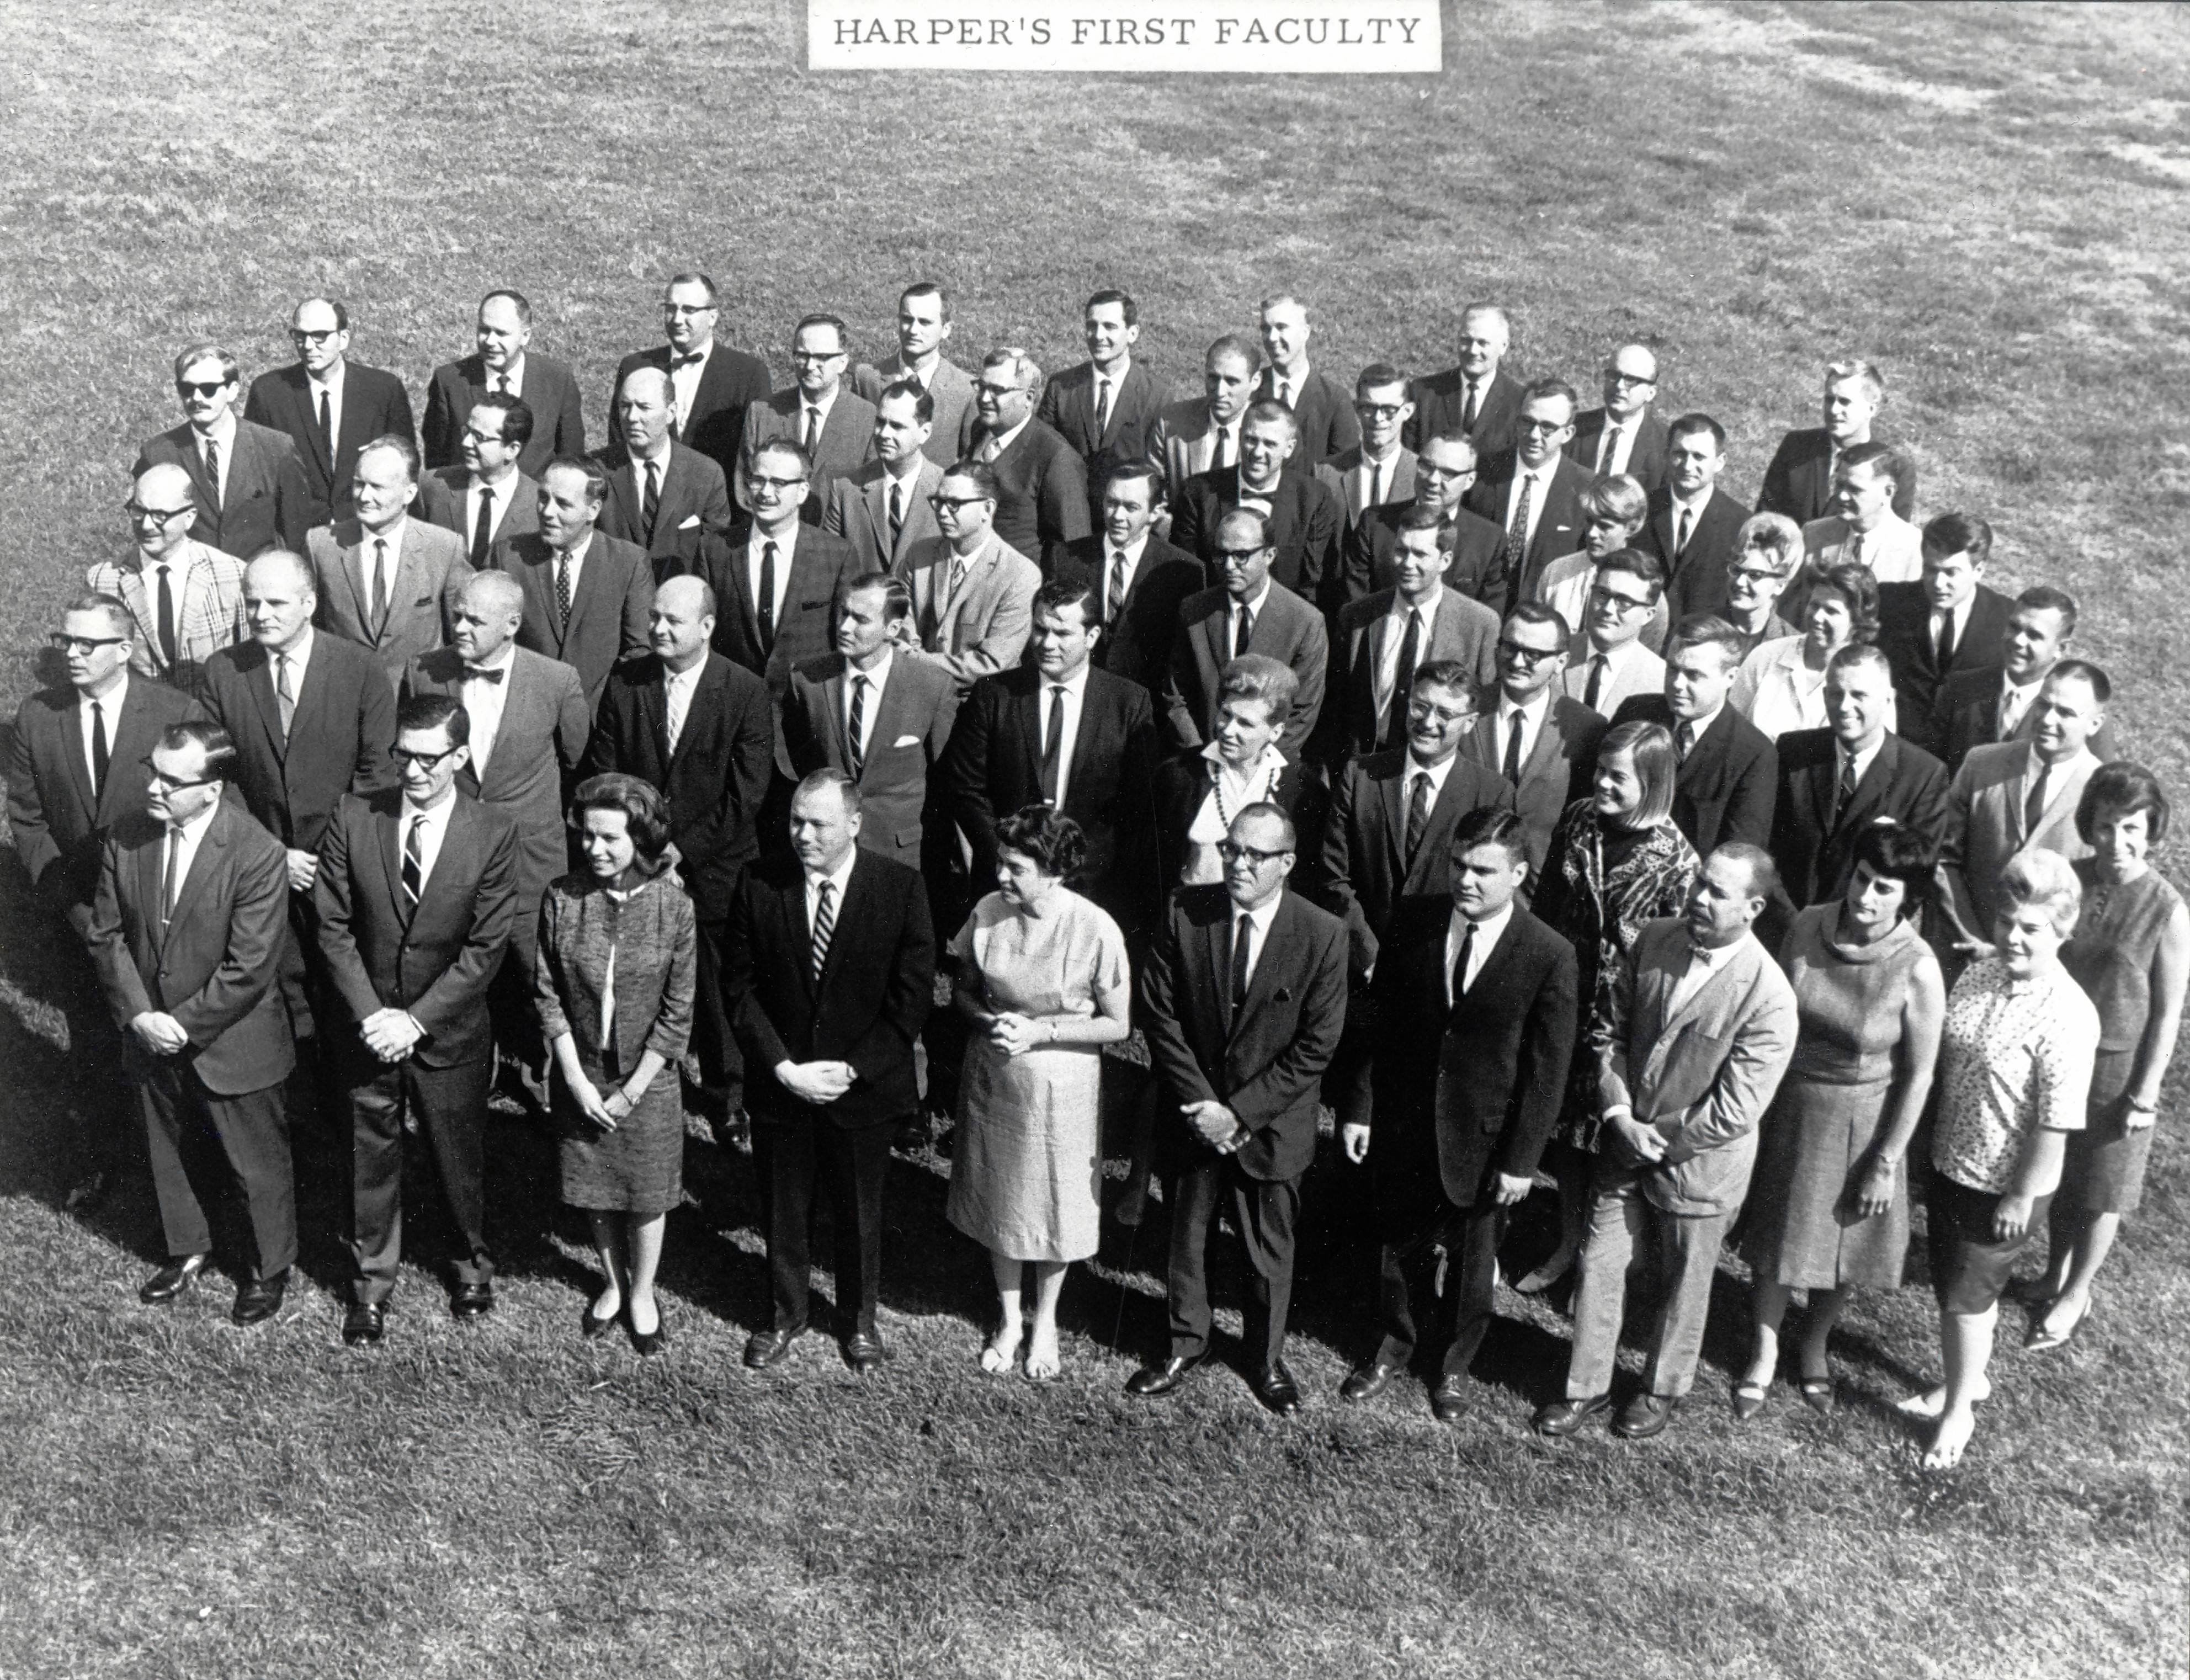 Harper College's 44 original faculty members taught classes starting in September 1967 at a temporary campus at Elk Grove High School.